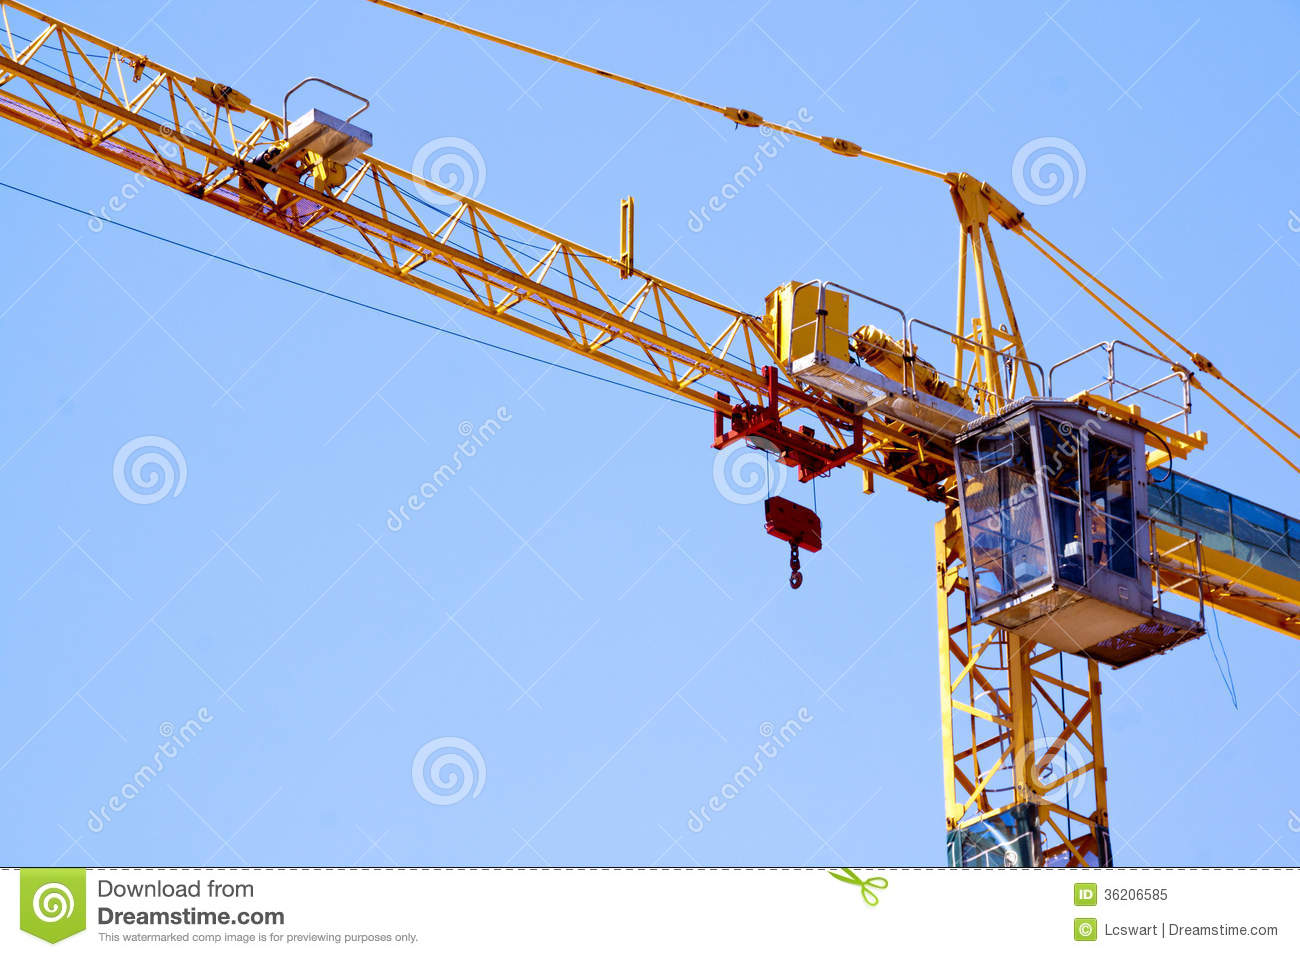 Construction Lift Arm : Control cabin arm and pulleys on high lift crane stock